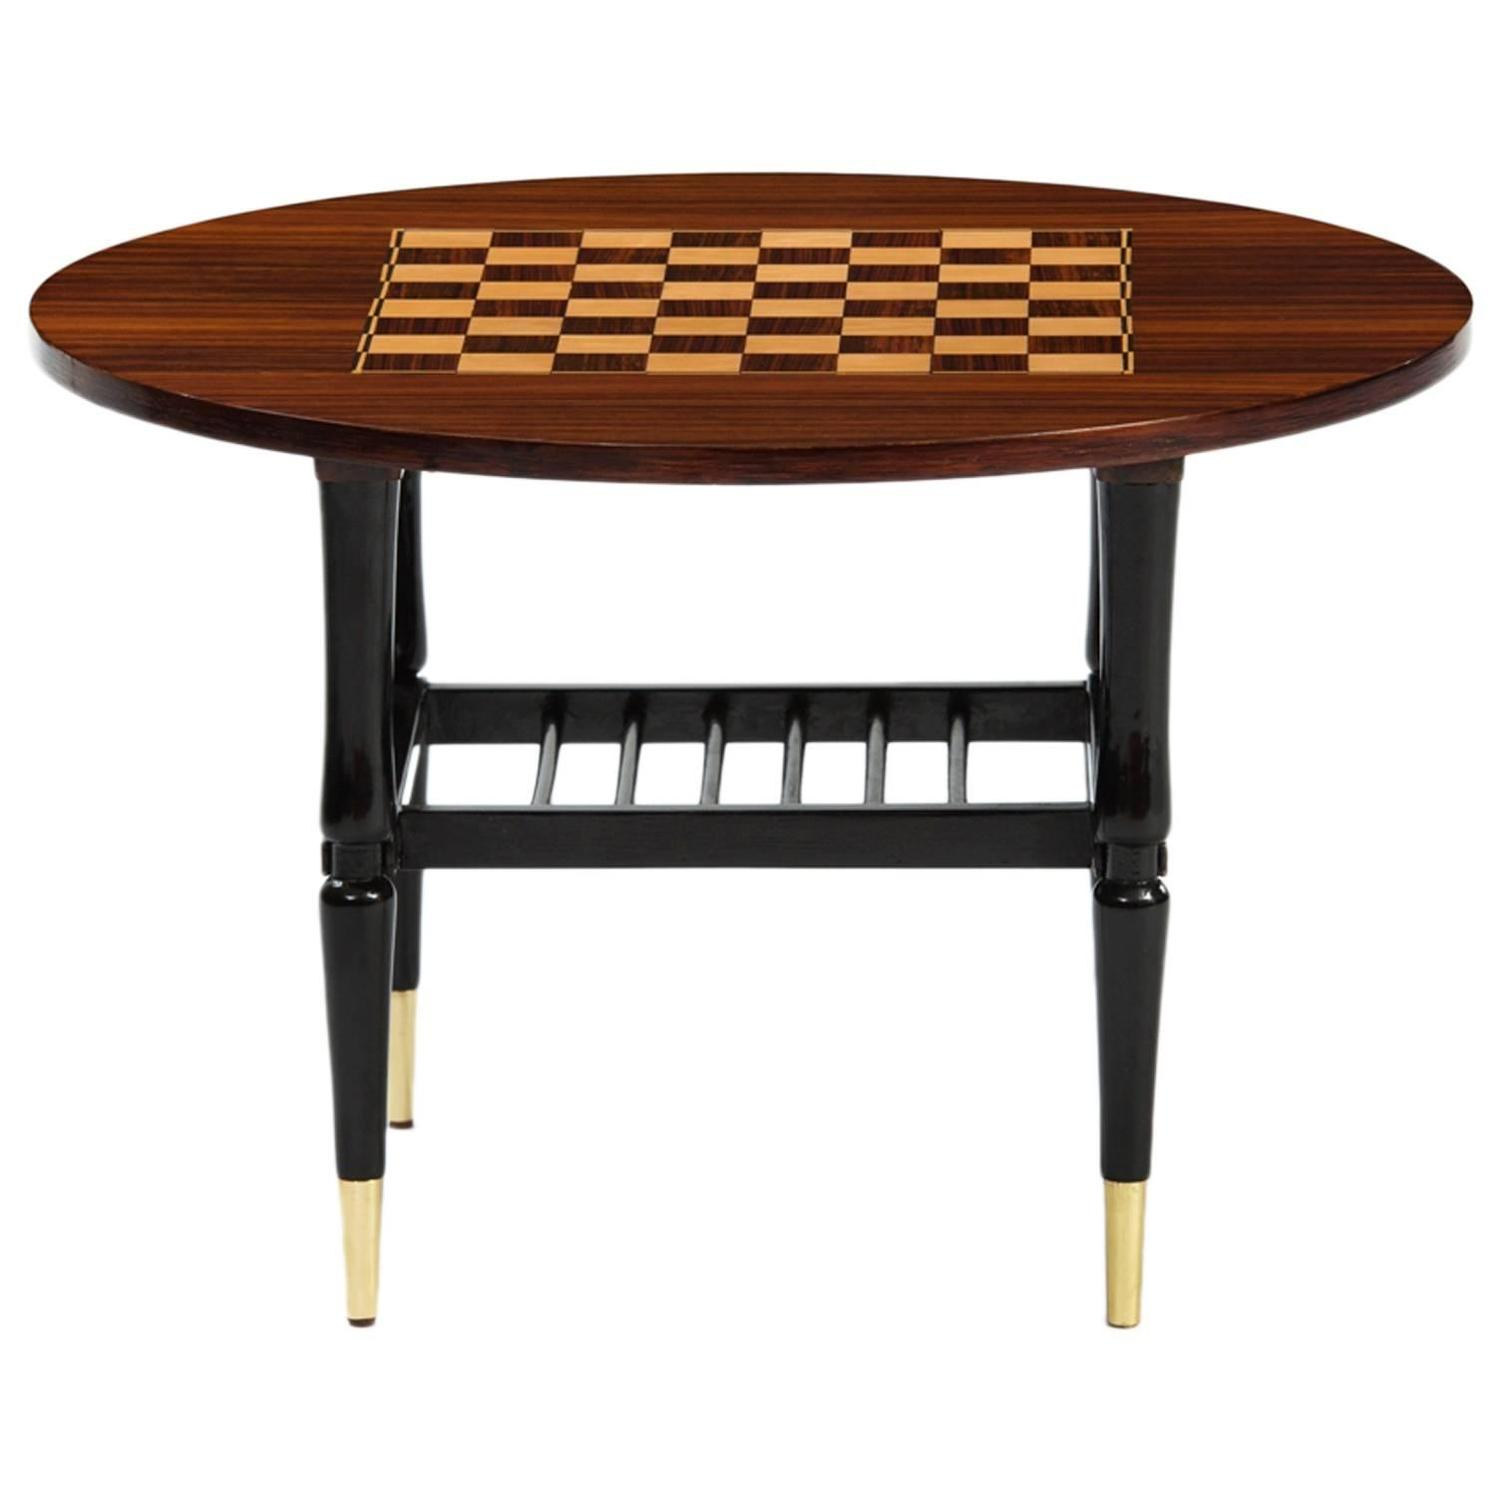 Italian chess side table at 1stdibs for 1 1 table